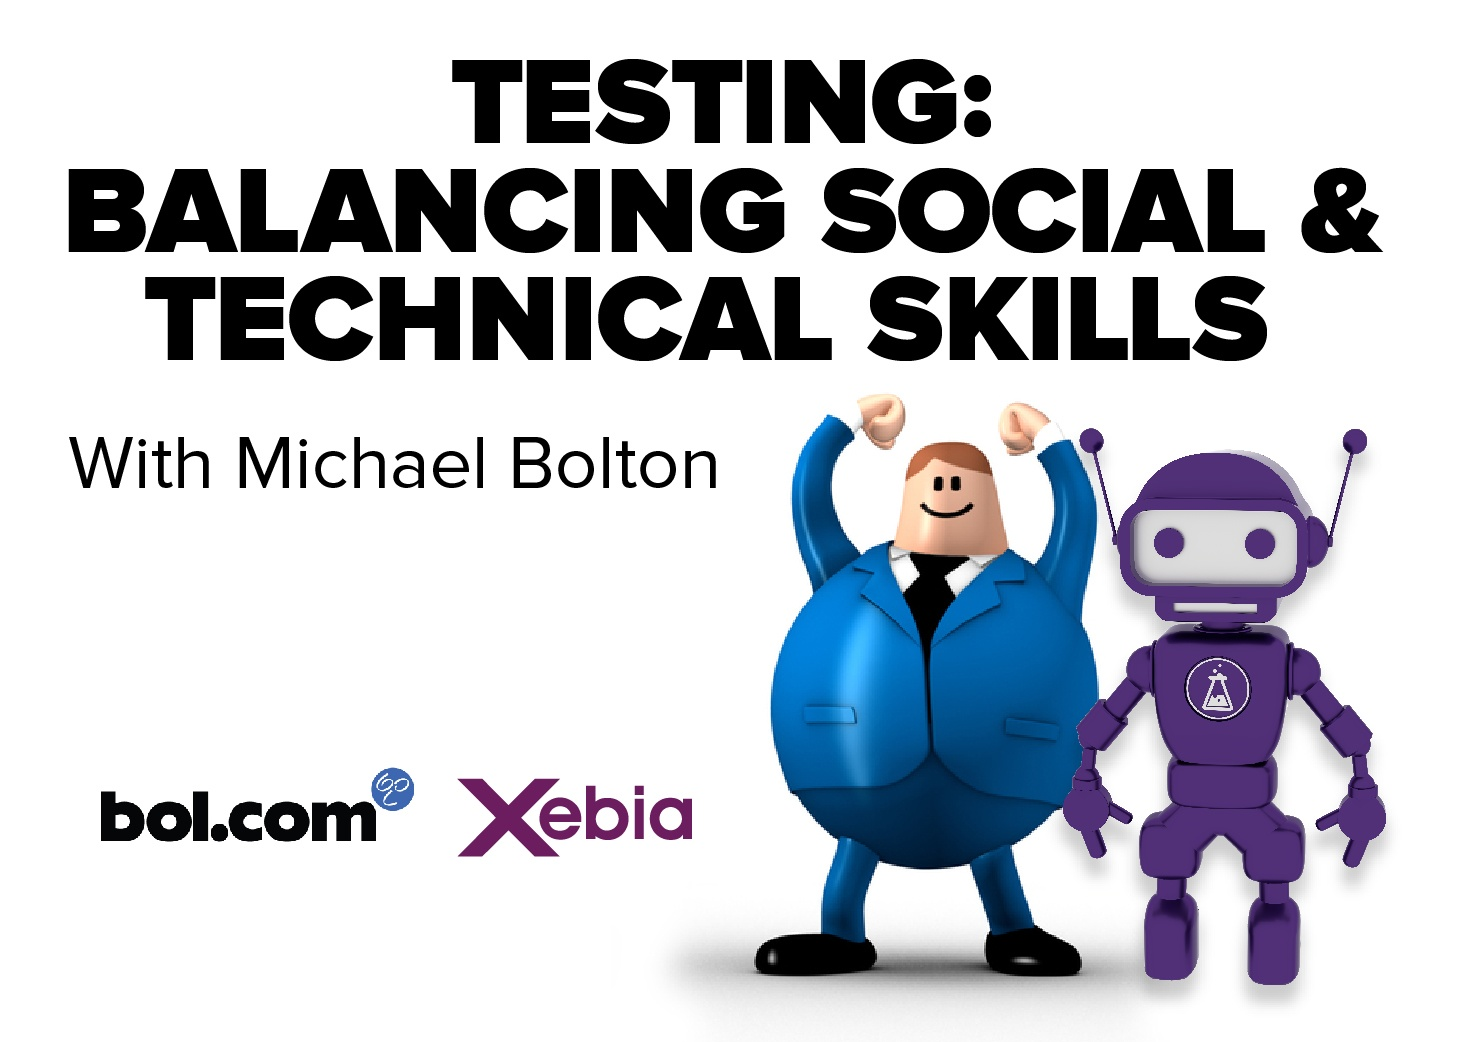 Meetup with Xebia, bol.com and Michael Bolton